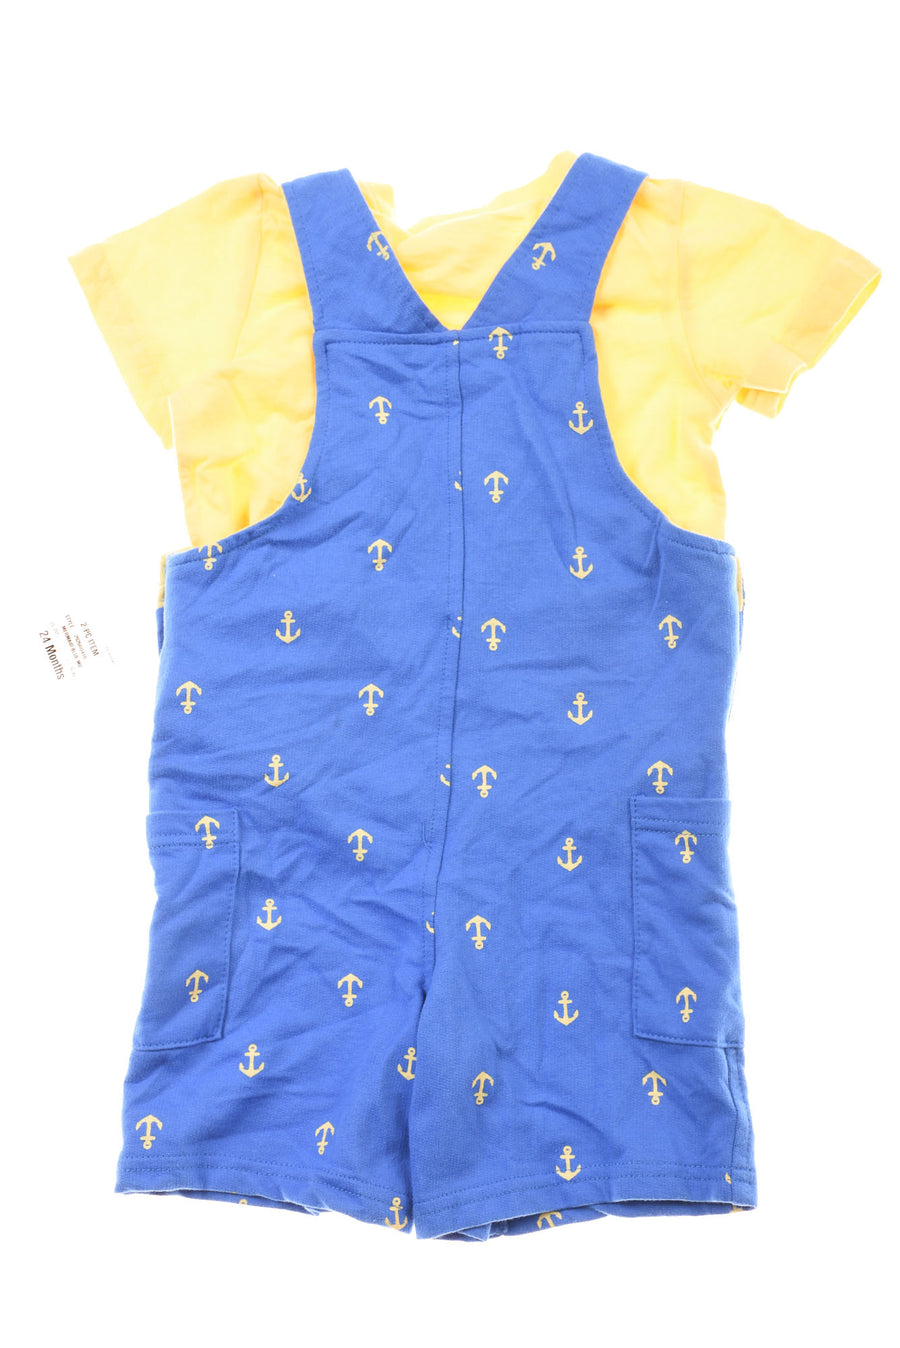 NEW First Impressions Baby Boy's Outfit 24 Months Blue & Yellow